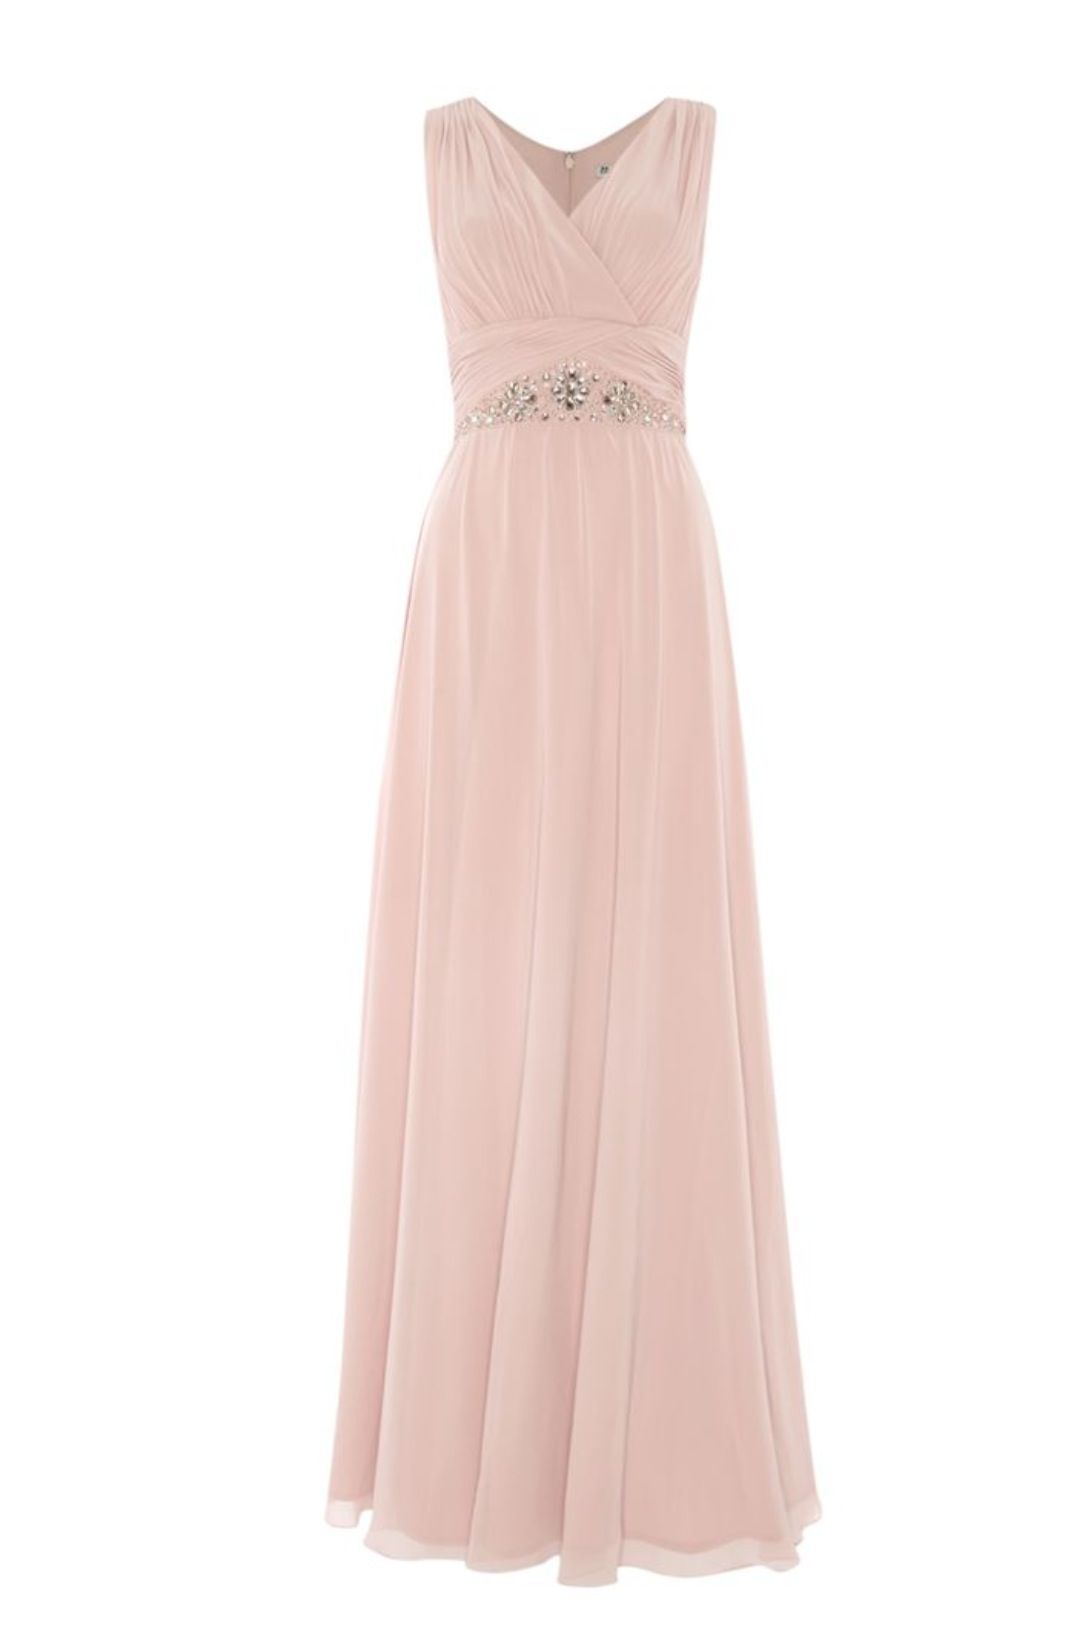 Dusty pink dress | damas de honor | Pinterest | Damitas de honor ...